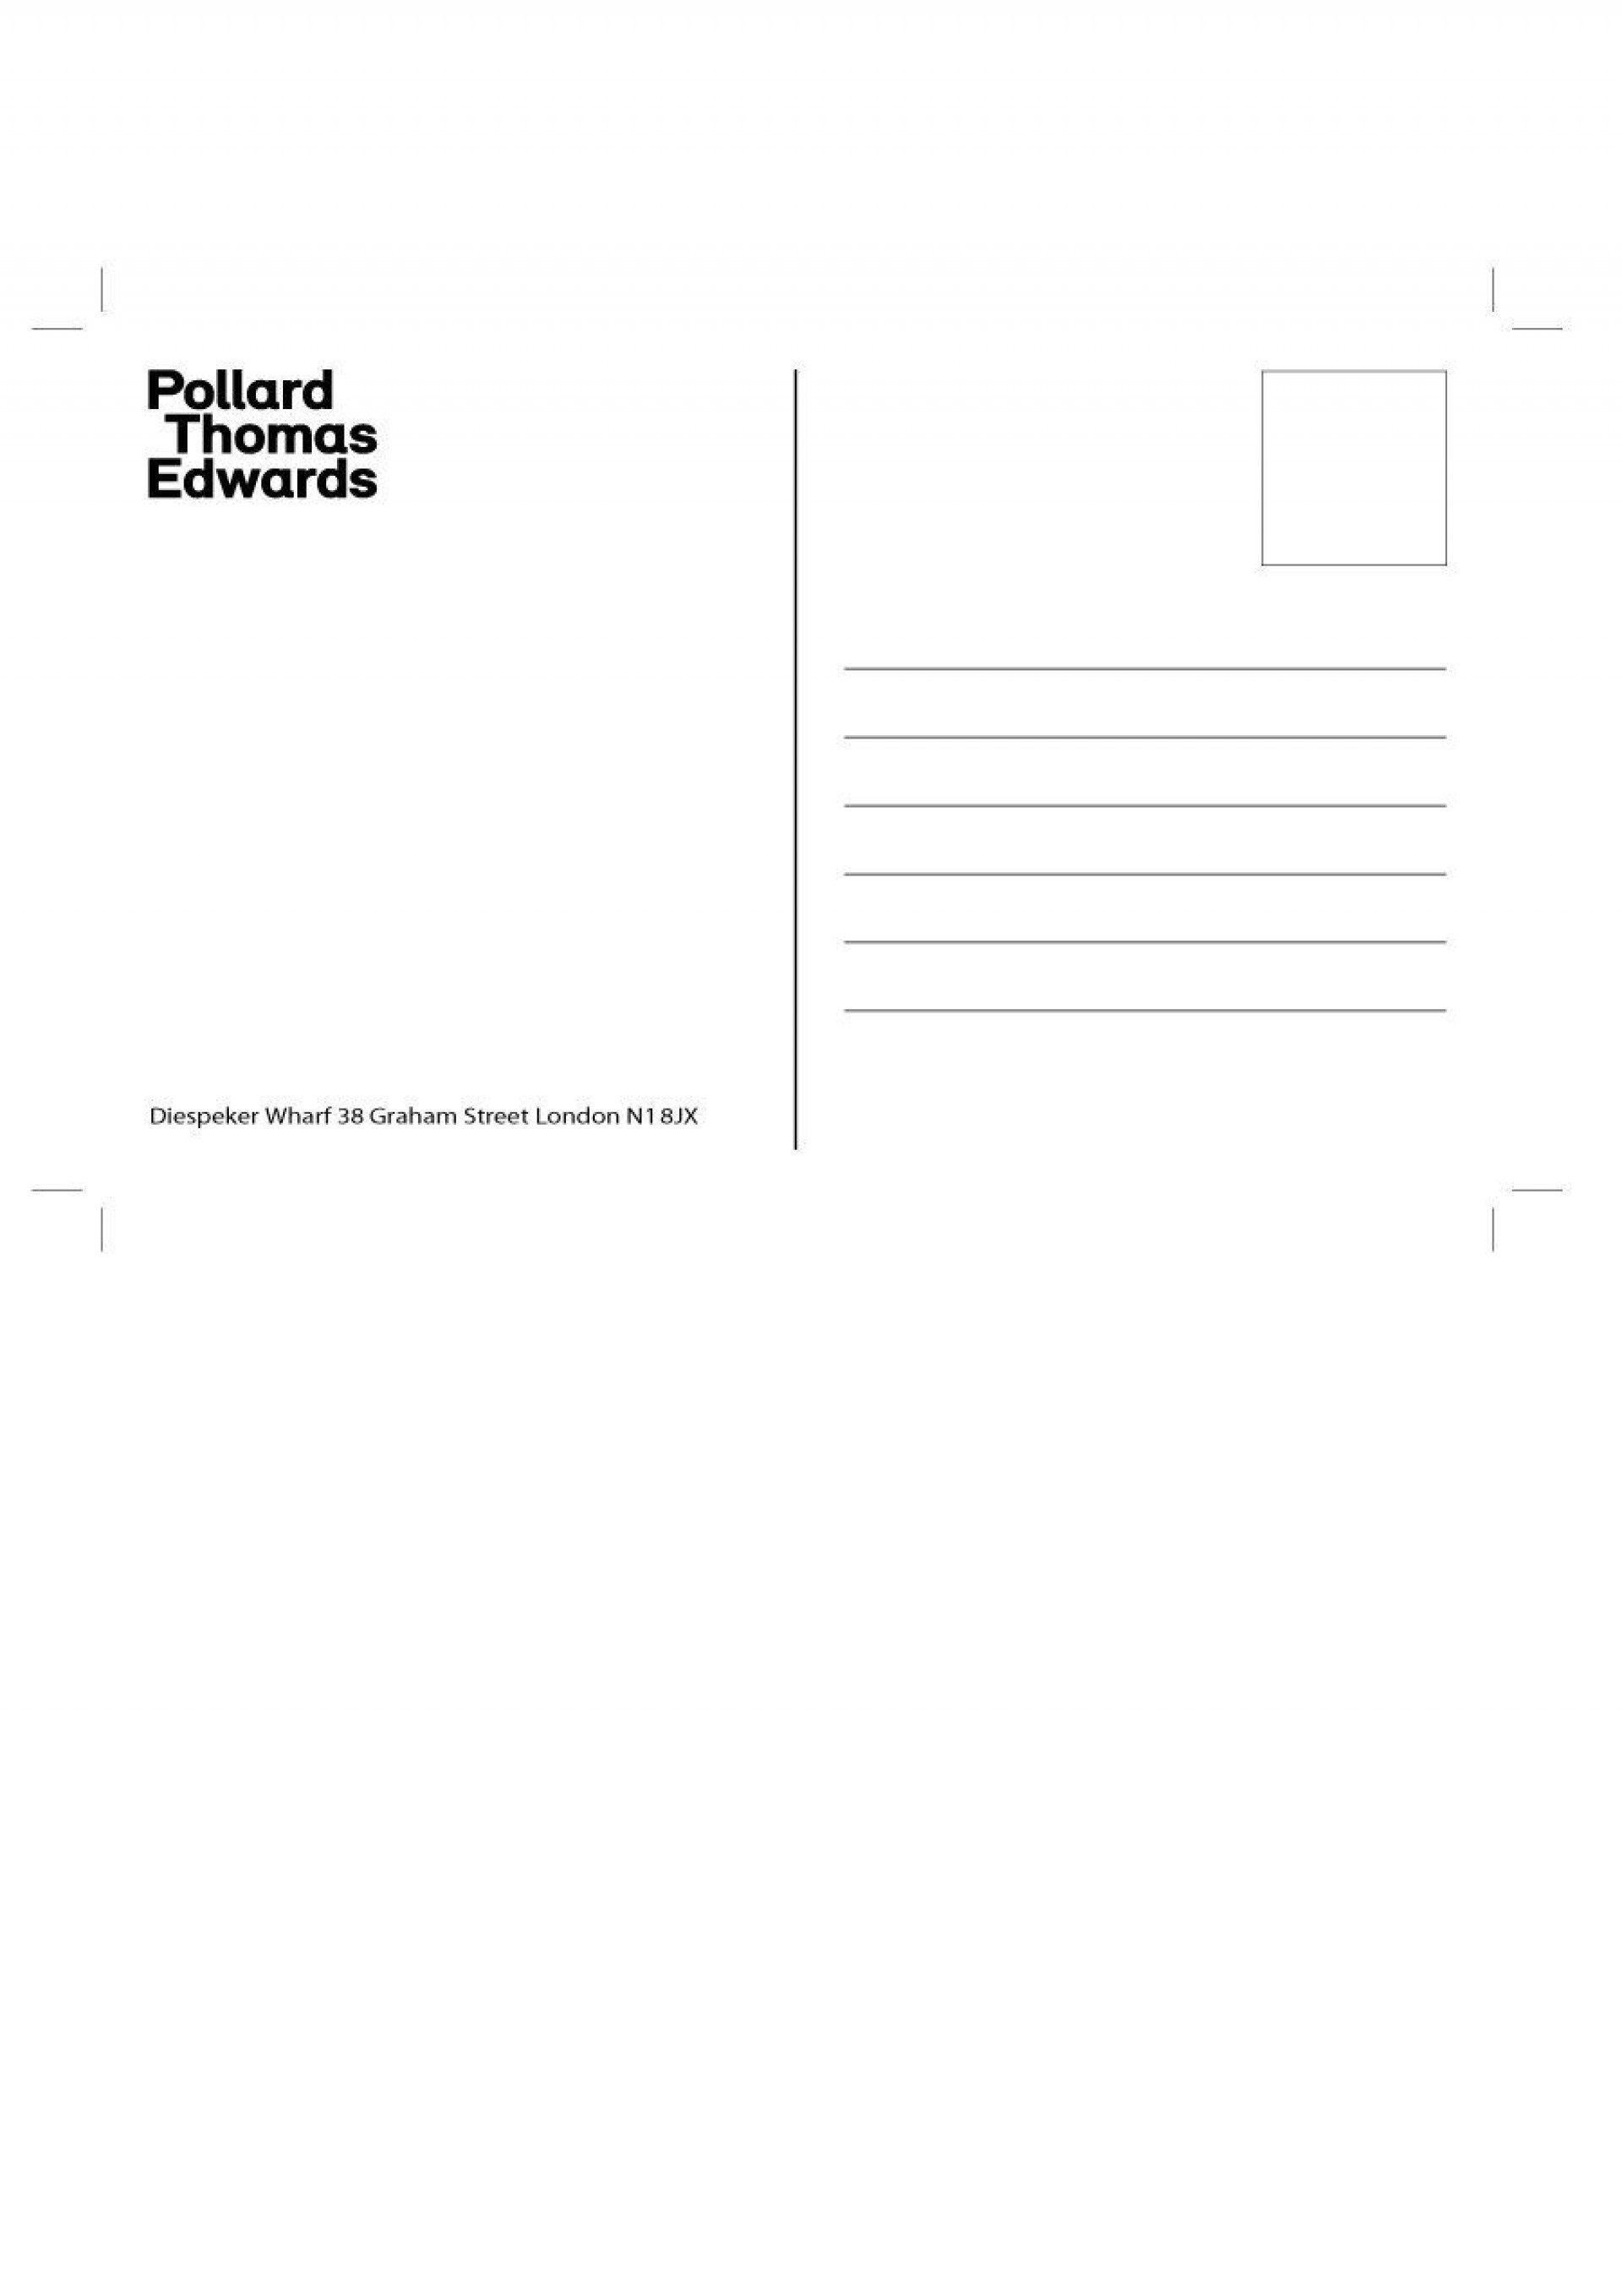 003 Awful Rsvp Postcard Template For Word Sample Full